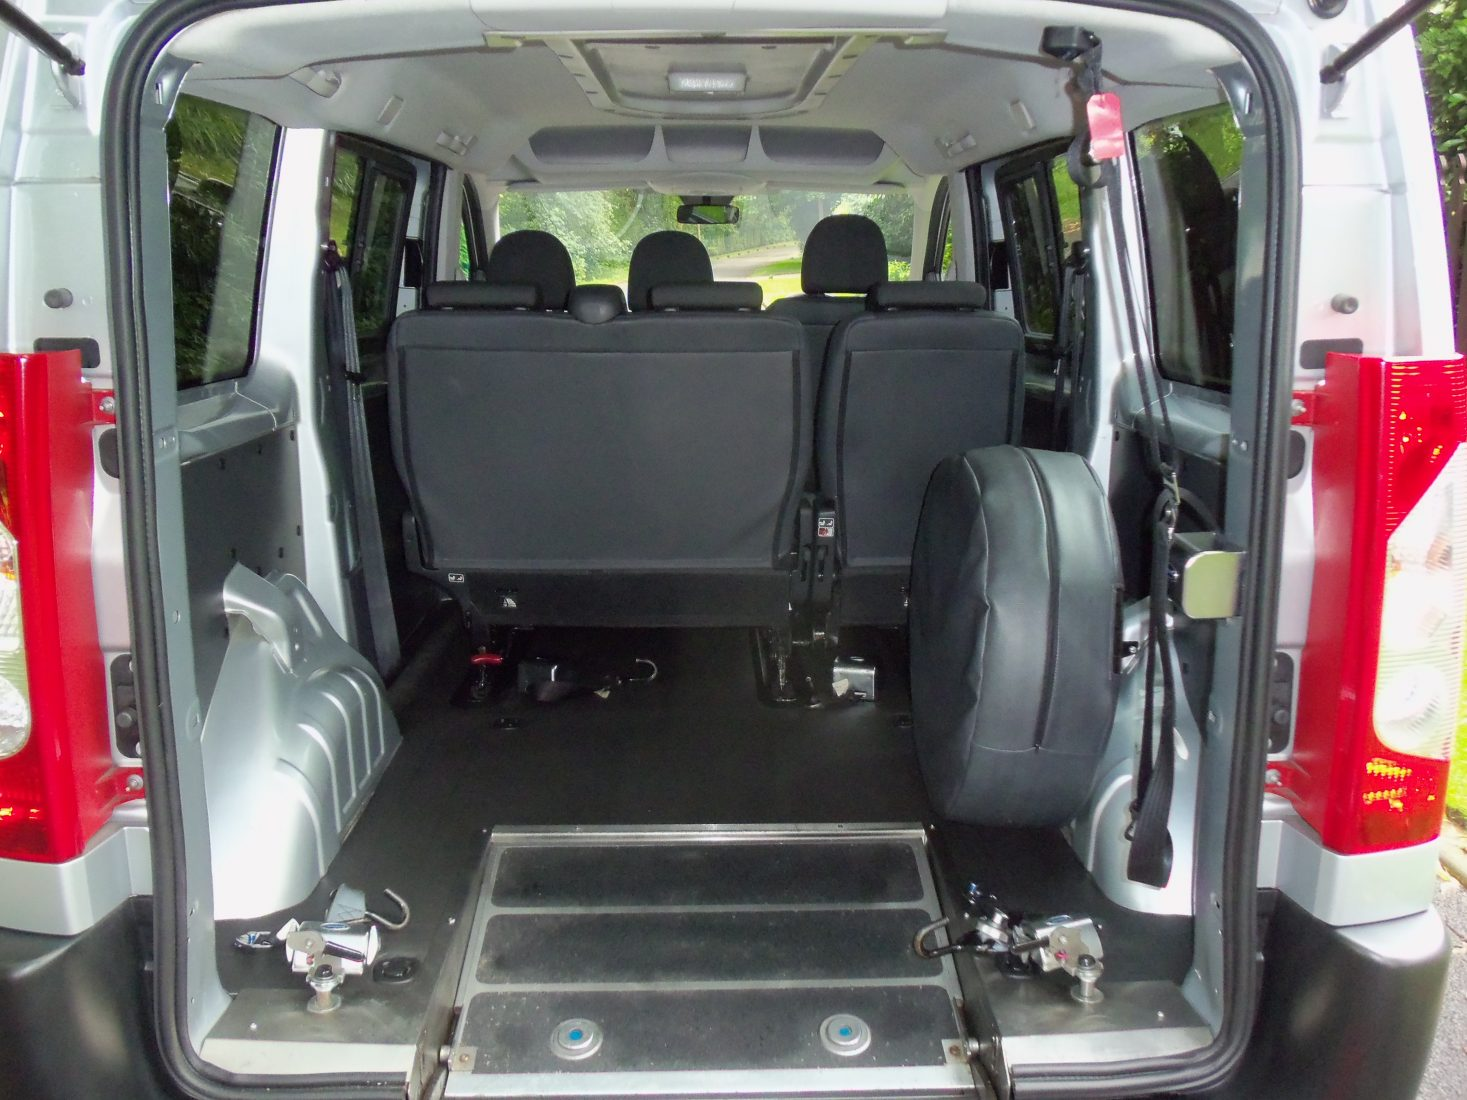 wheelchair cab office depot hardwood floor chair mat accessible taxi eccles manchester